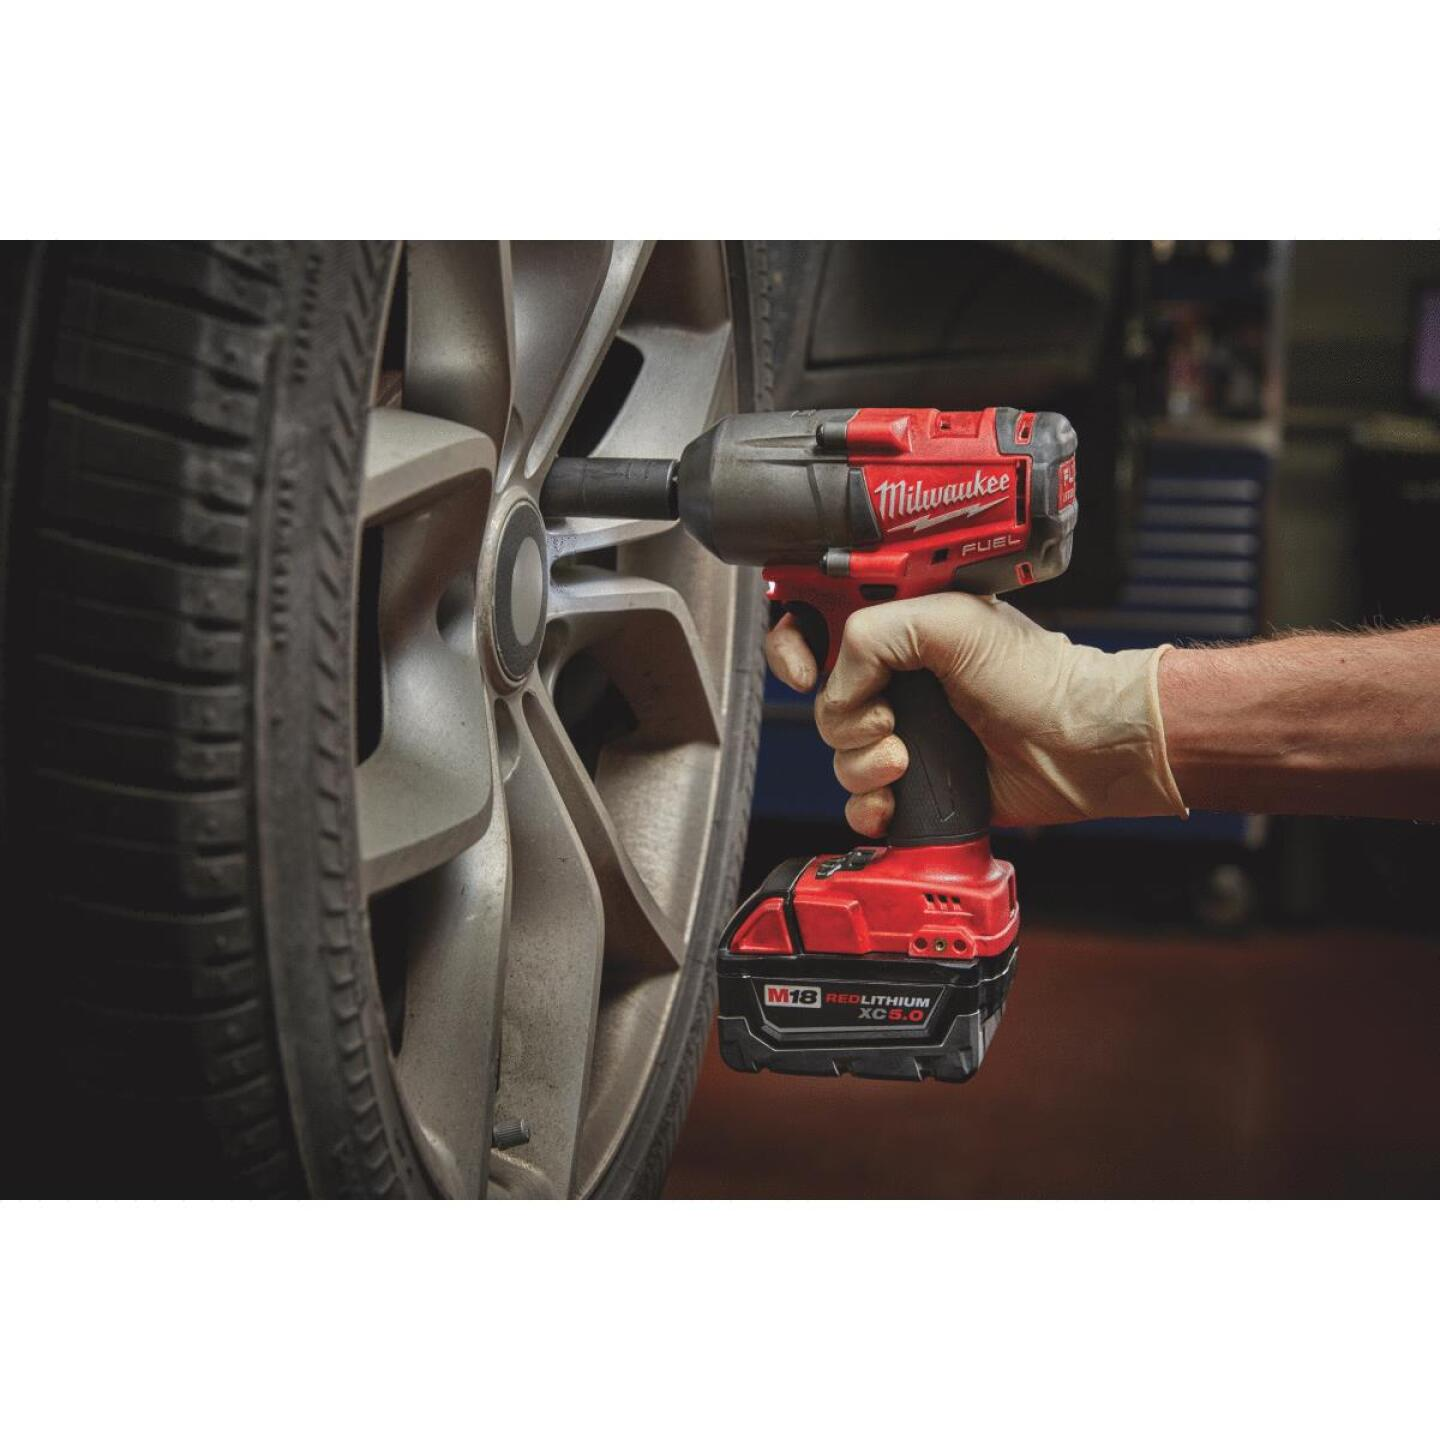 Milwaukee M18 FUEL 18 Volt Lithium-Ion Brushless 1/2 In. Mid-Torque Cordless Impact Wrench with Friction Ring (Bare Tool) Image 2